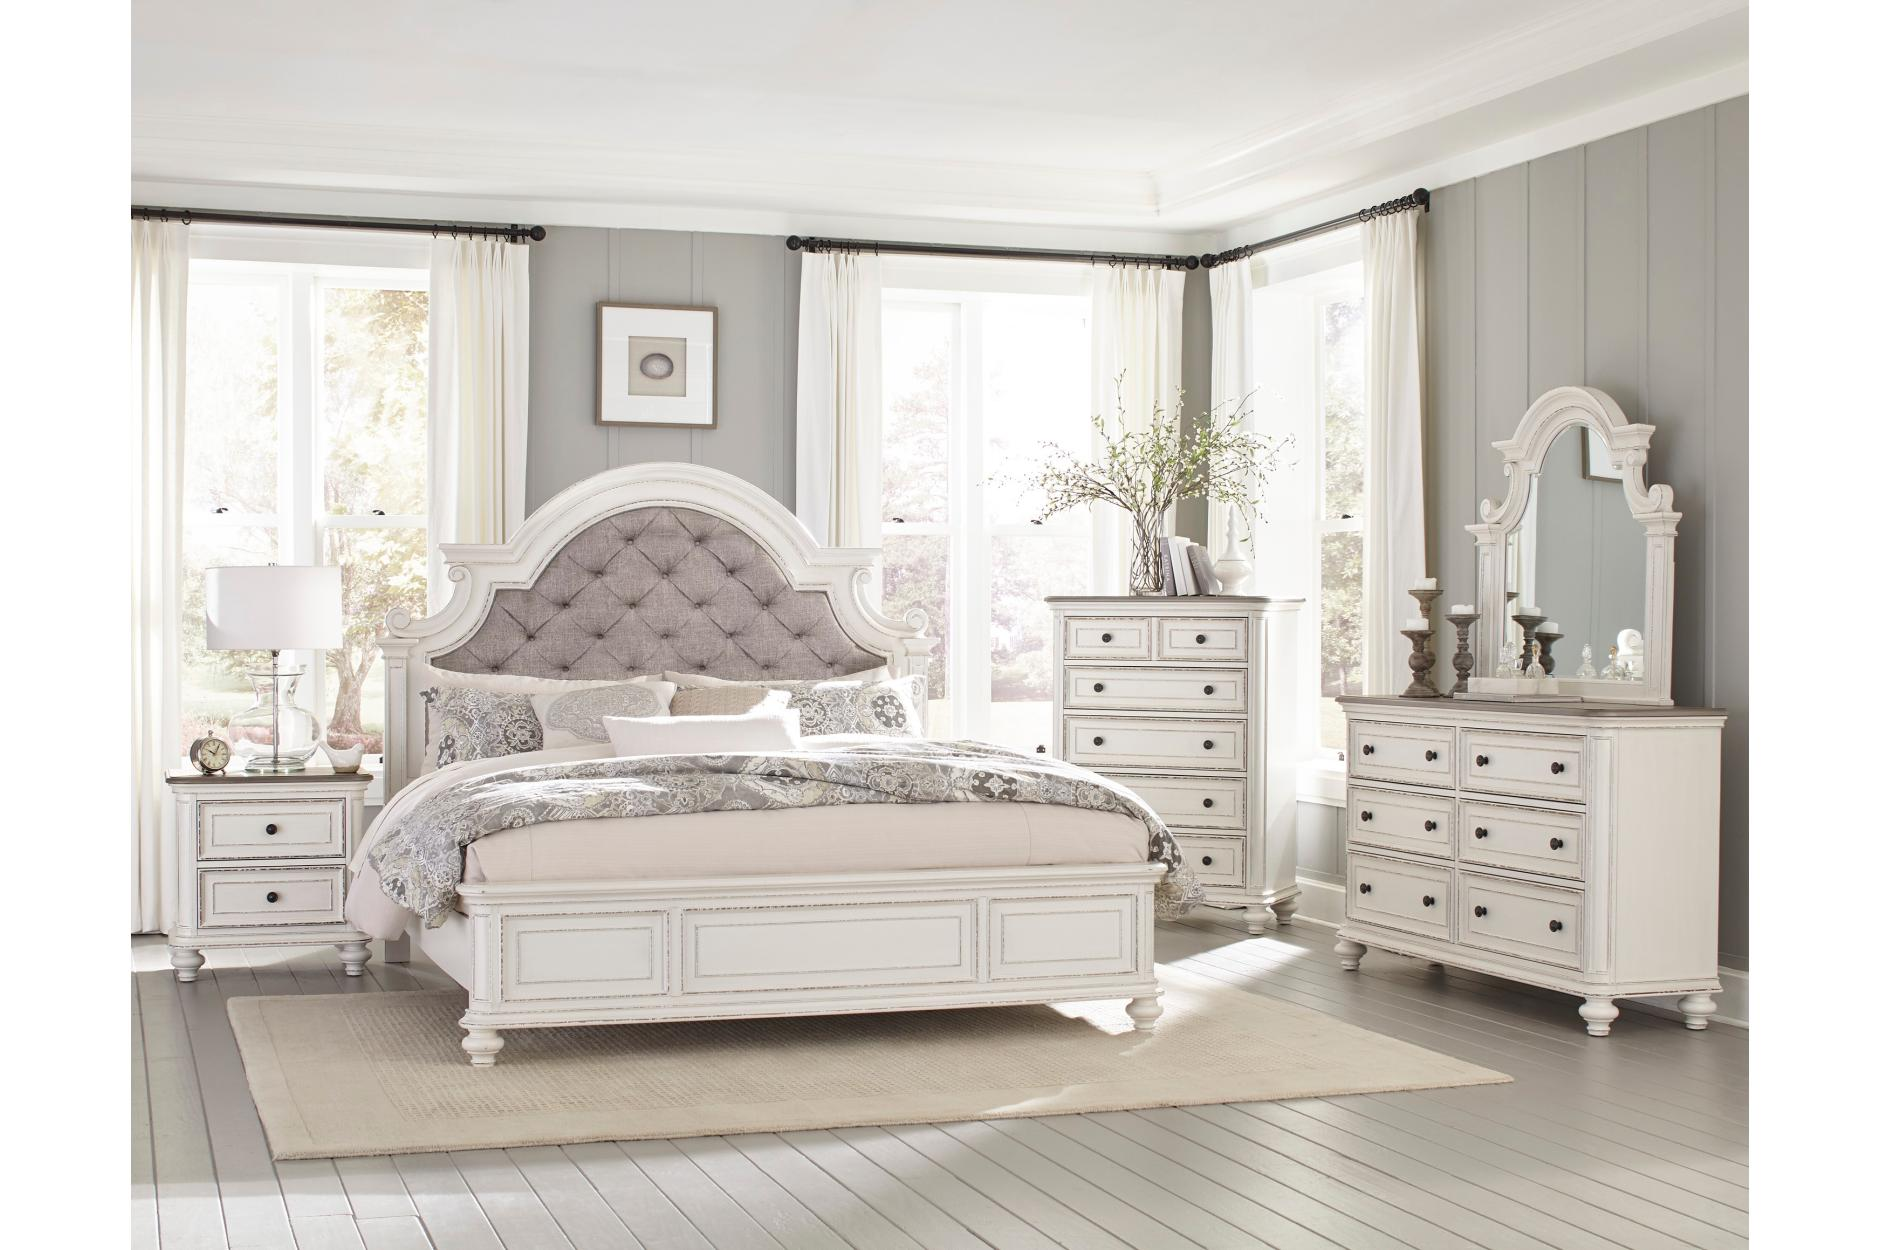 Homelegance Baylesford Gray Wood Finish 4 Piece Queen Bedroom Set